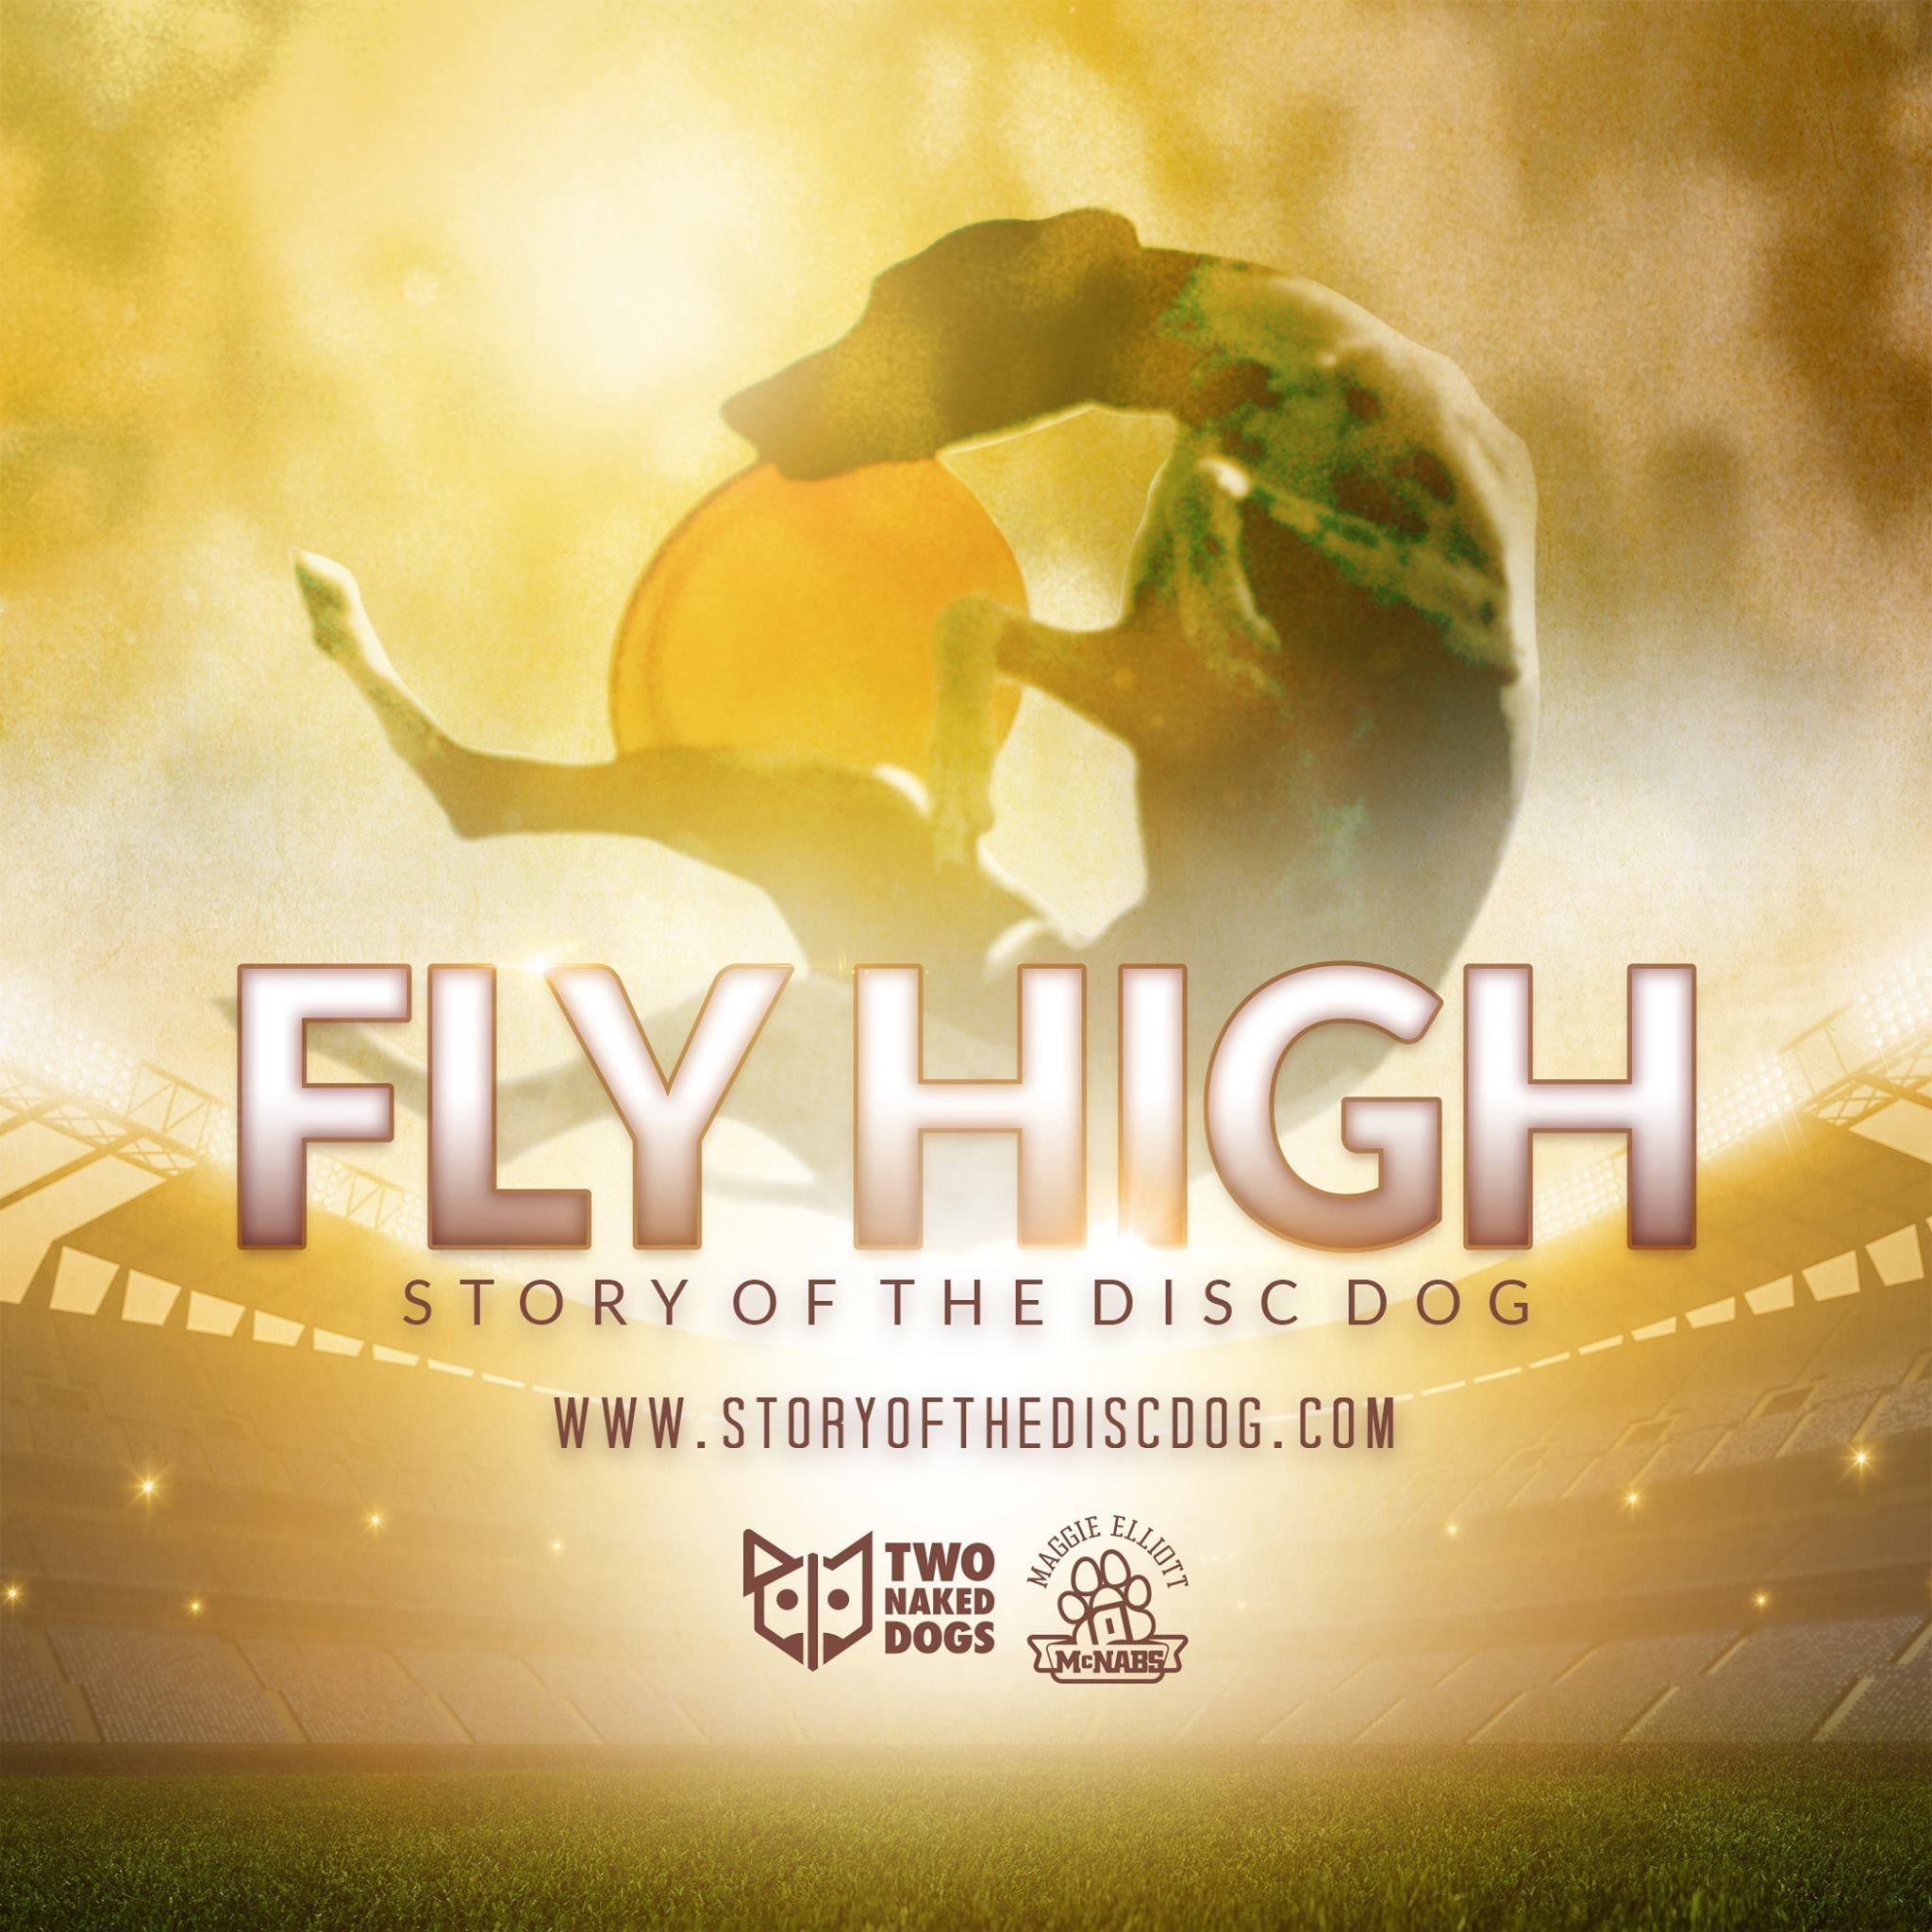 Fly High Story of the Disc Dog